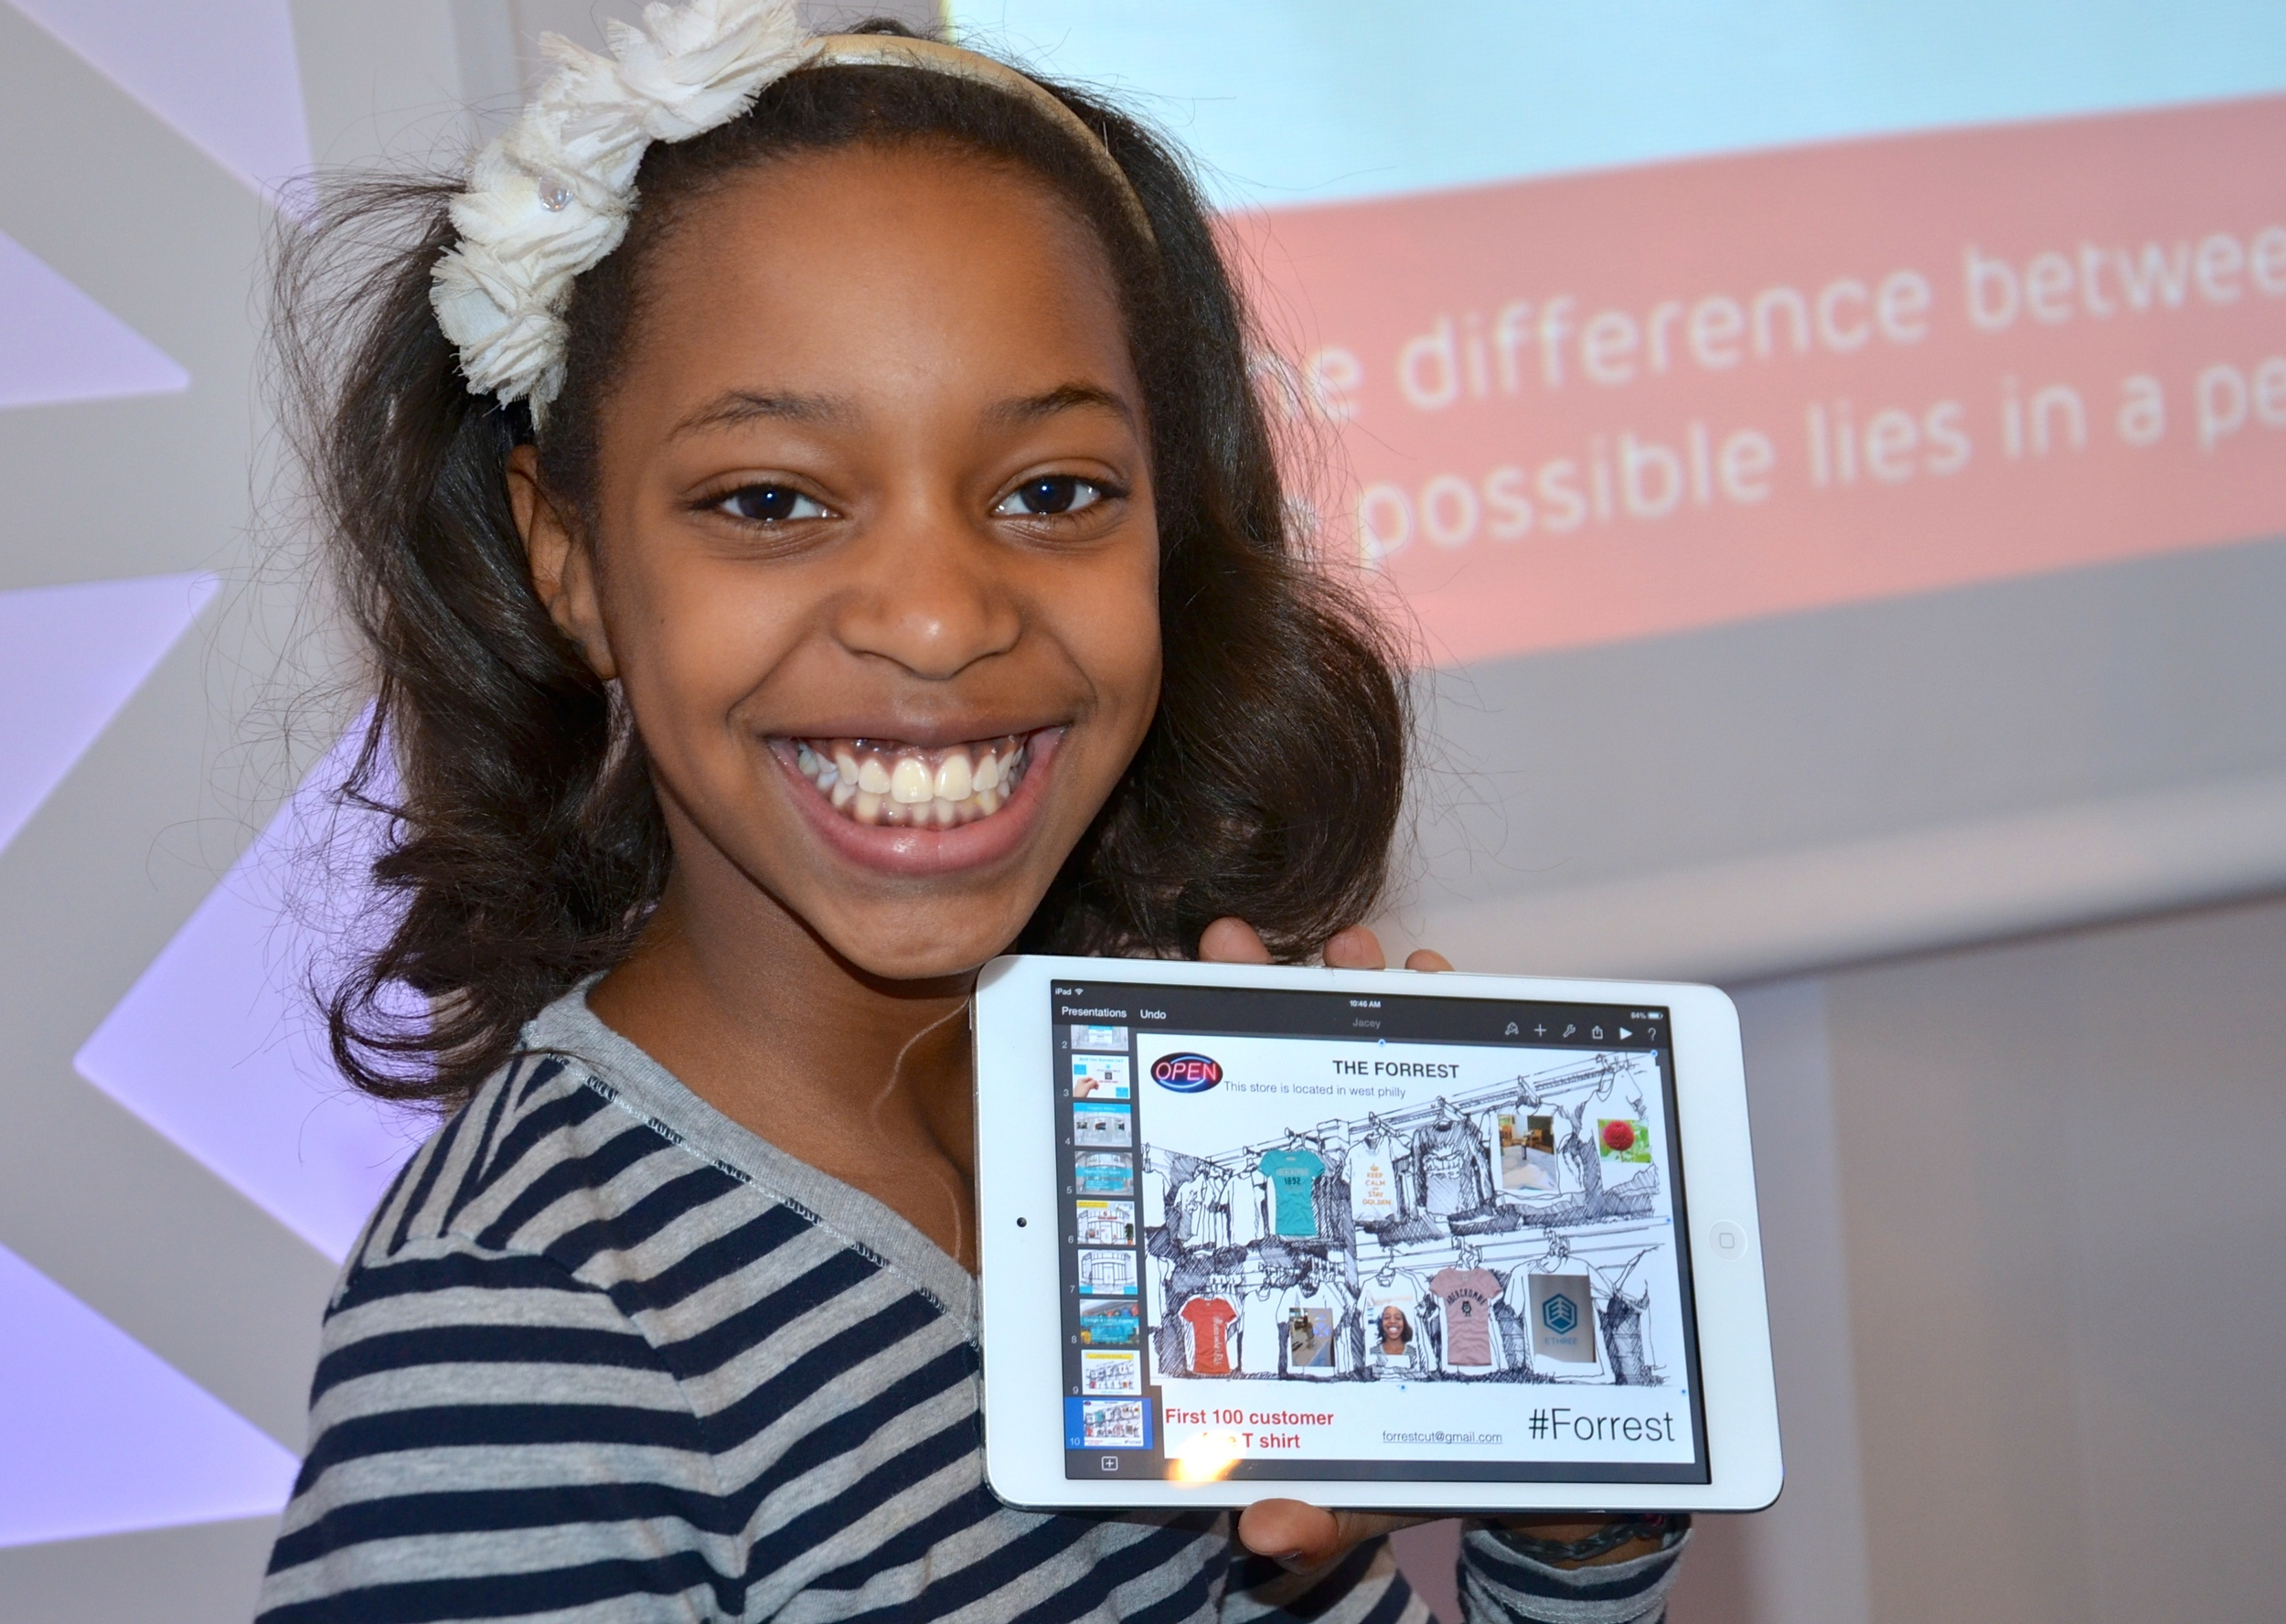 Children Heart Digital - We are a 21st century learning company capturing the power of digital.